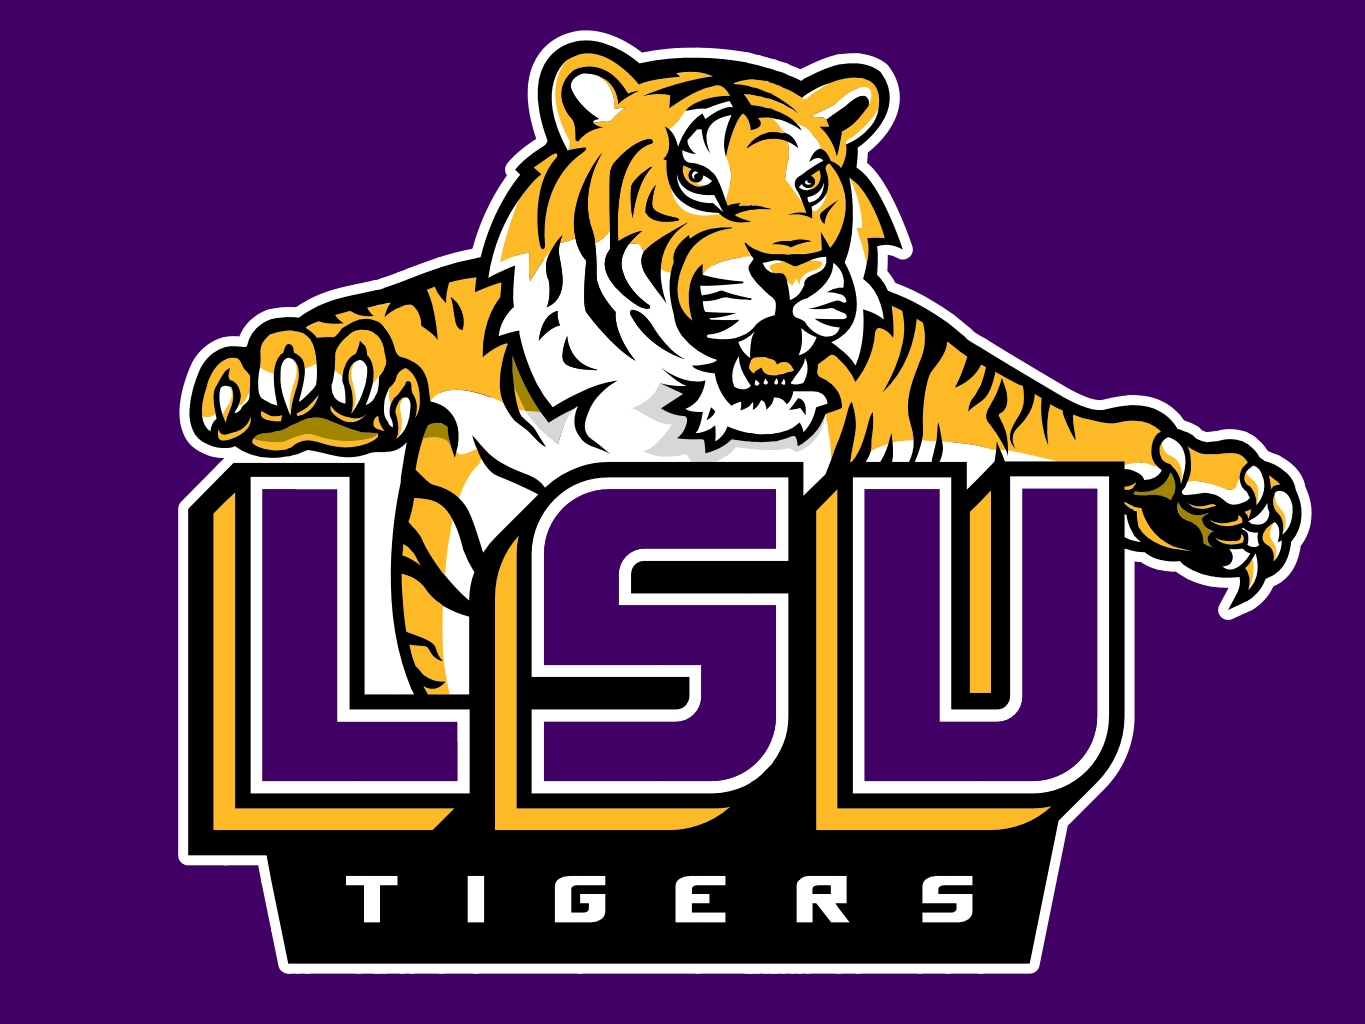 48+] Louisiana State University Wallpaper on WallpaperSafari.